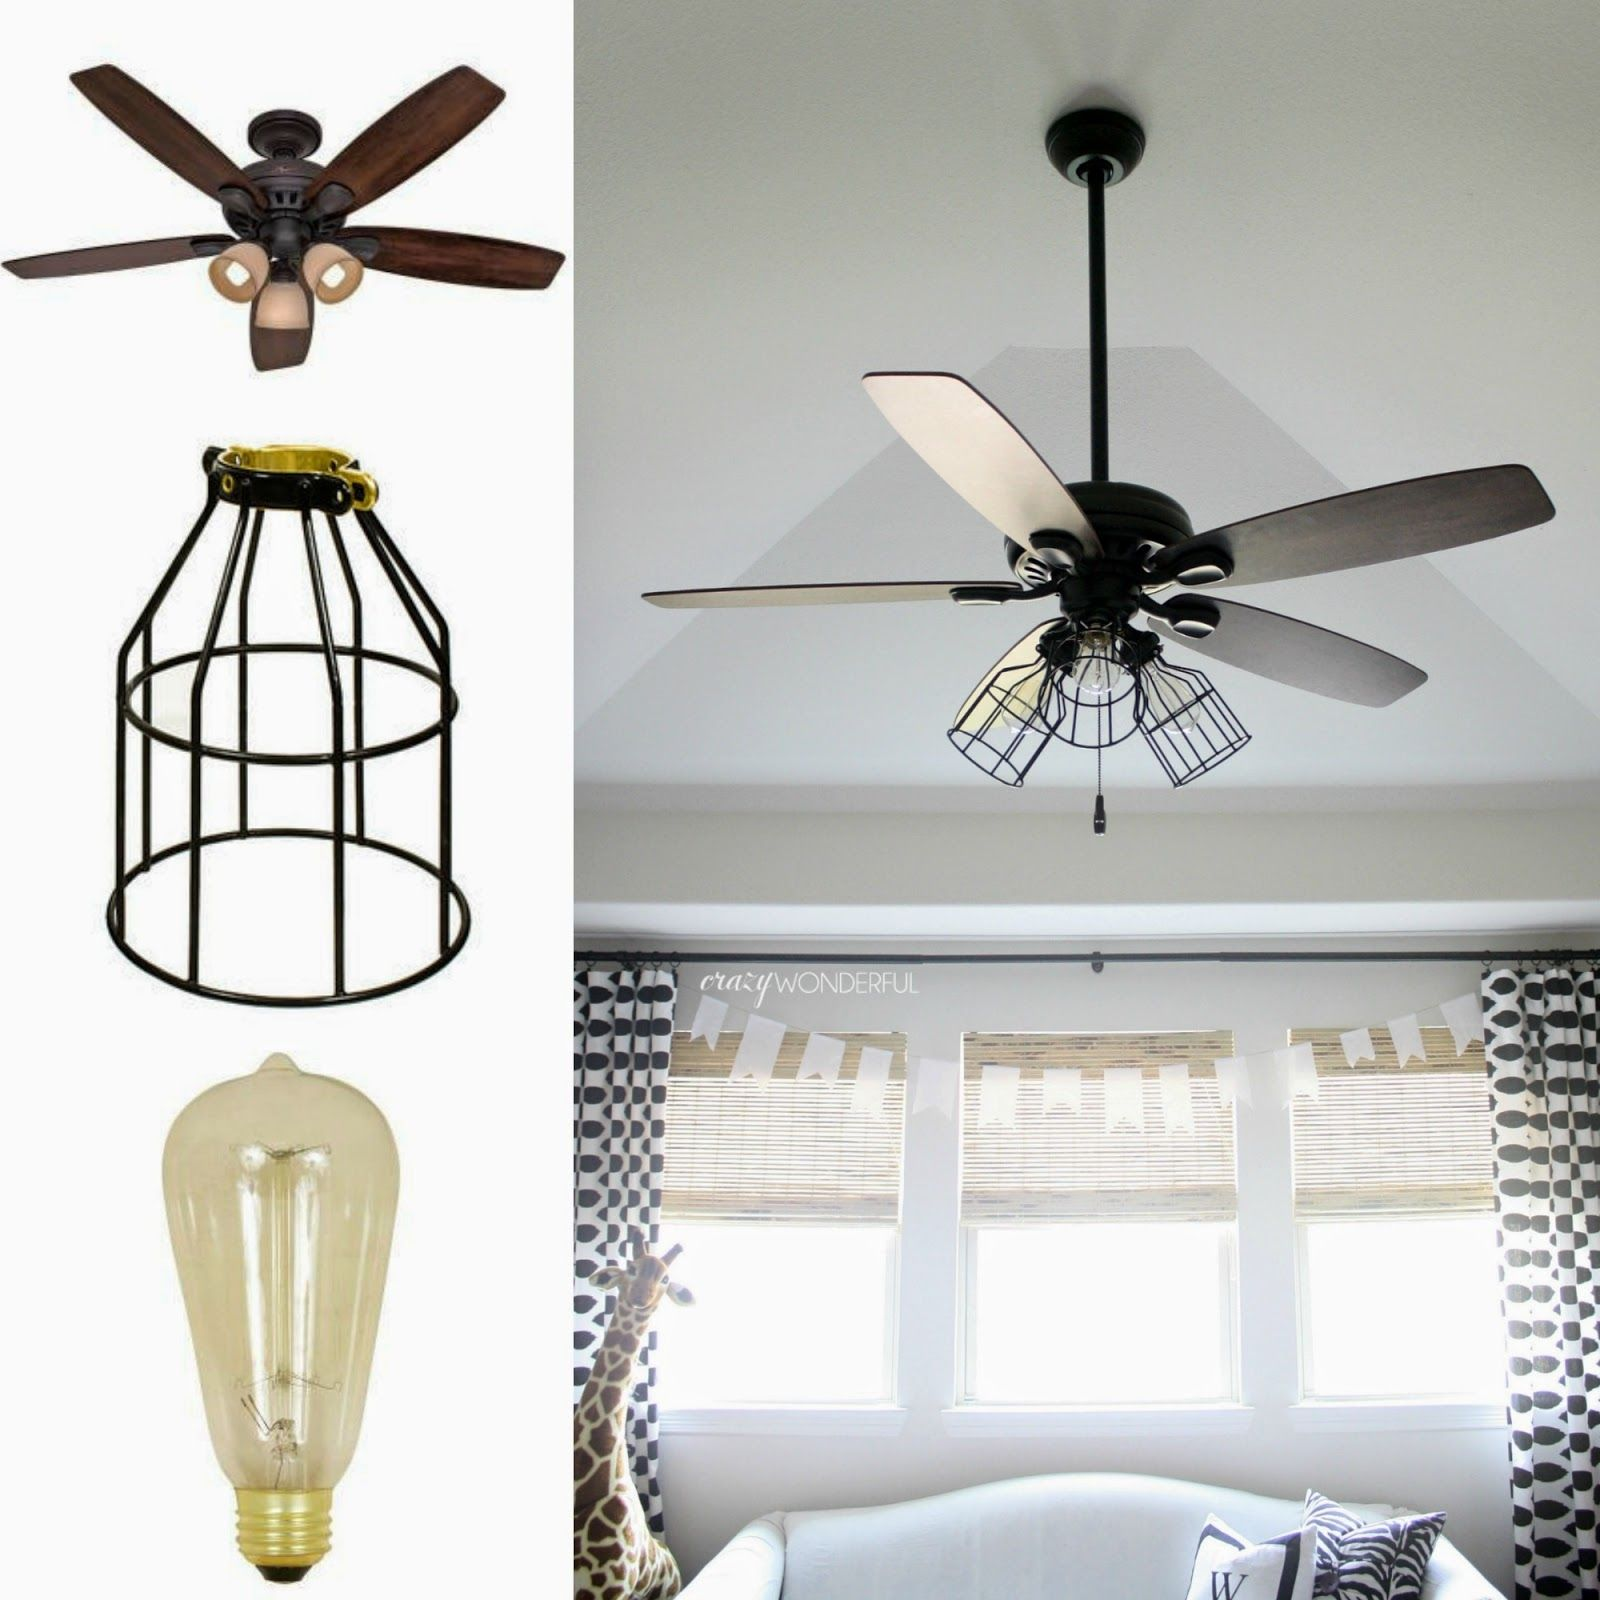 Lamp shades for hunter ceiling fans be chic pinterest ceiling lamp shades for hunter ceiling fans aloadofball Images